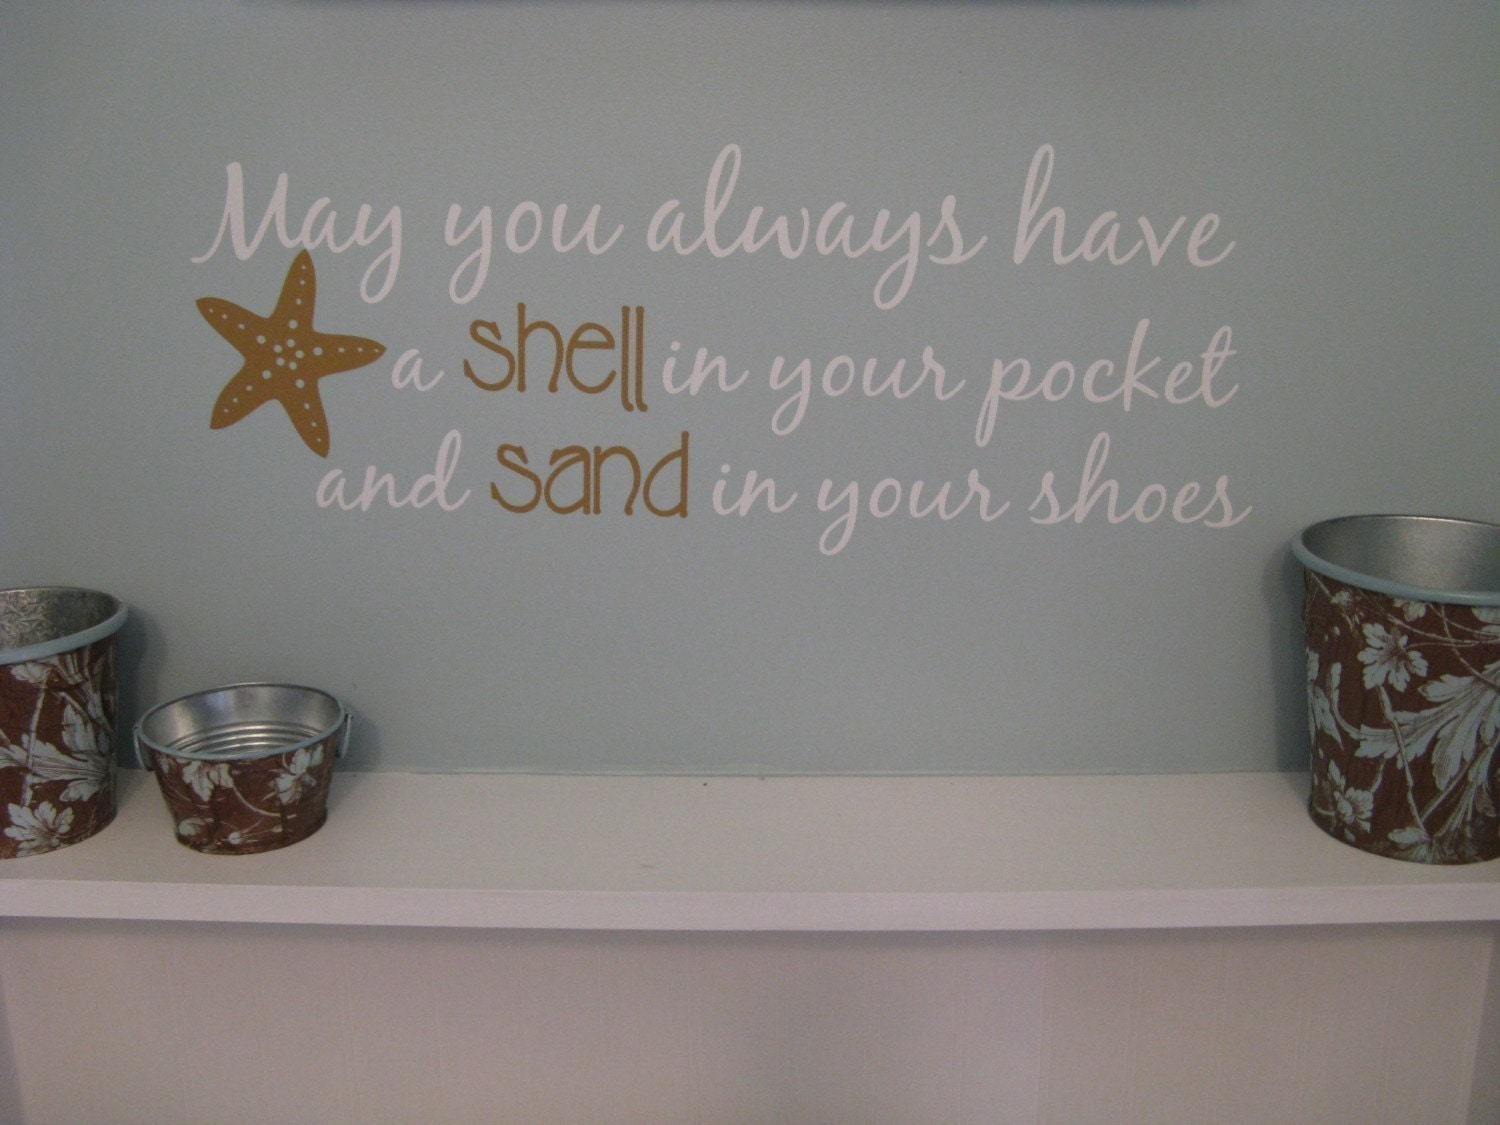 Coastal Wall Decor: Beach Saying Wall Decal May You Always Have Shell In Your